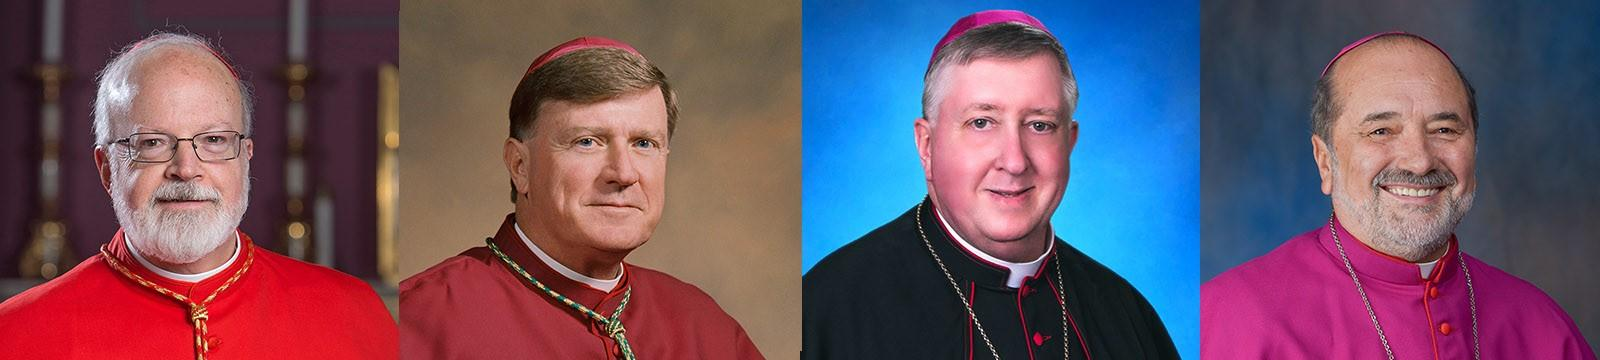 Cardinal Sean O' Malley of Boston, Bishop McManus of Worcester, Bishop Rozanski of Springfield, Bishop da Cuhna of Fall River